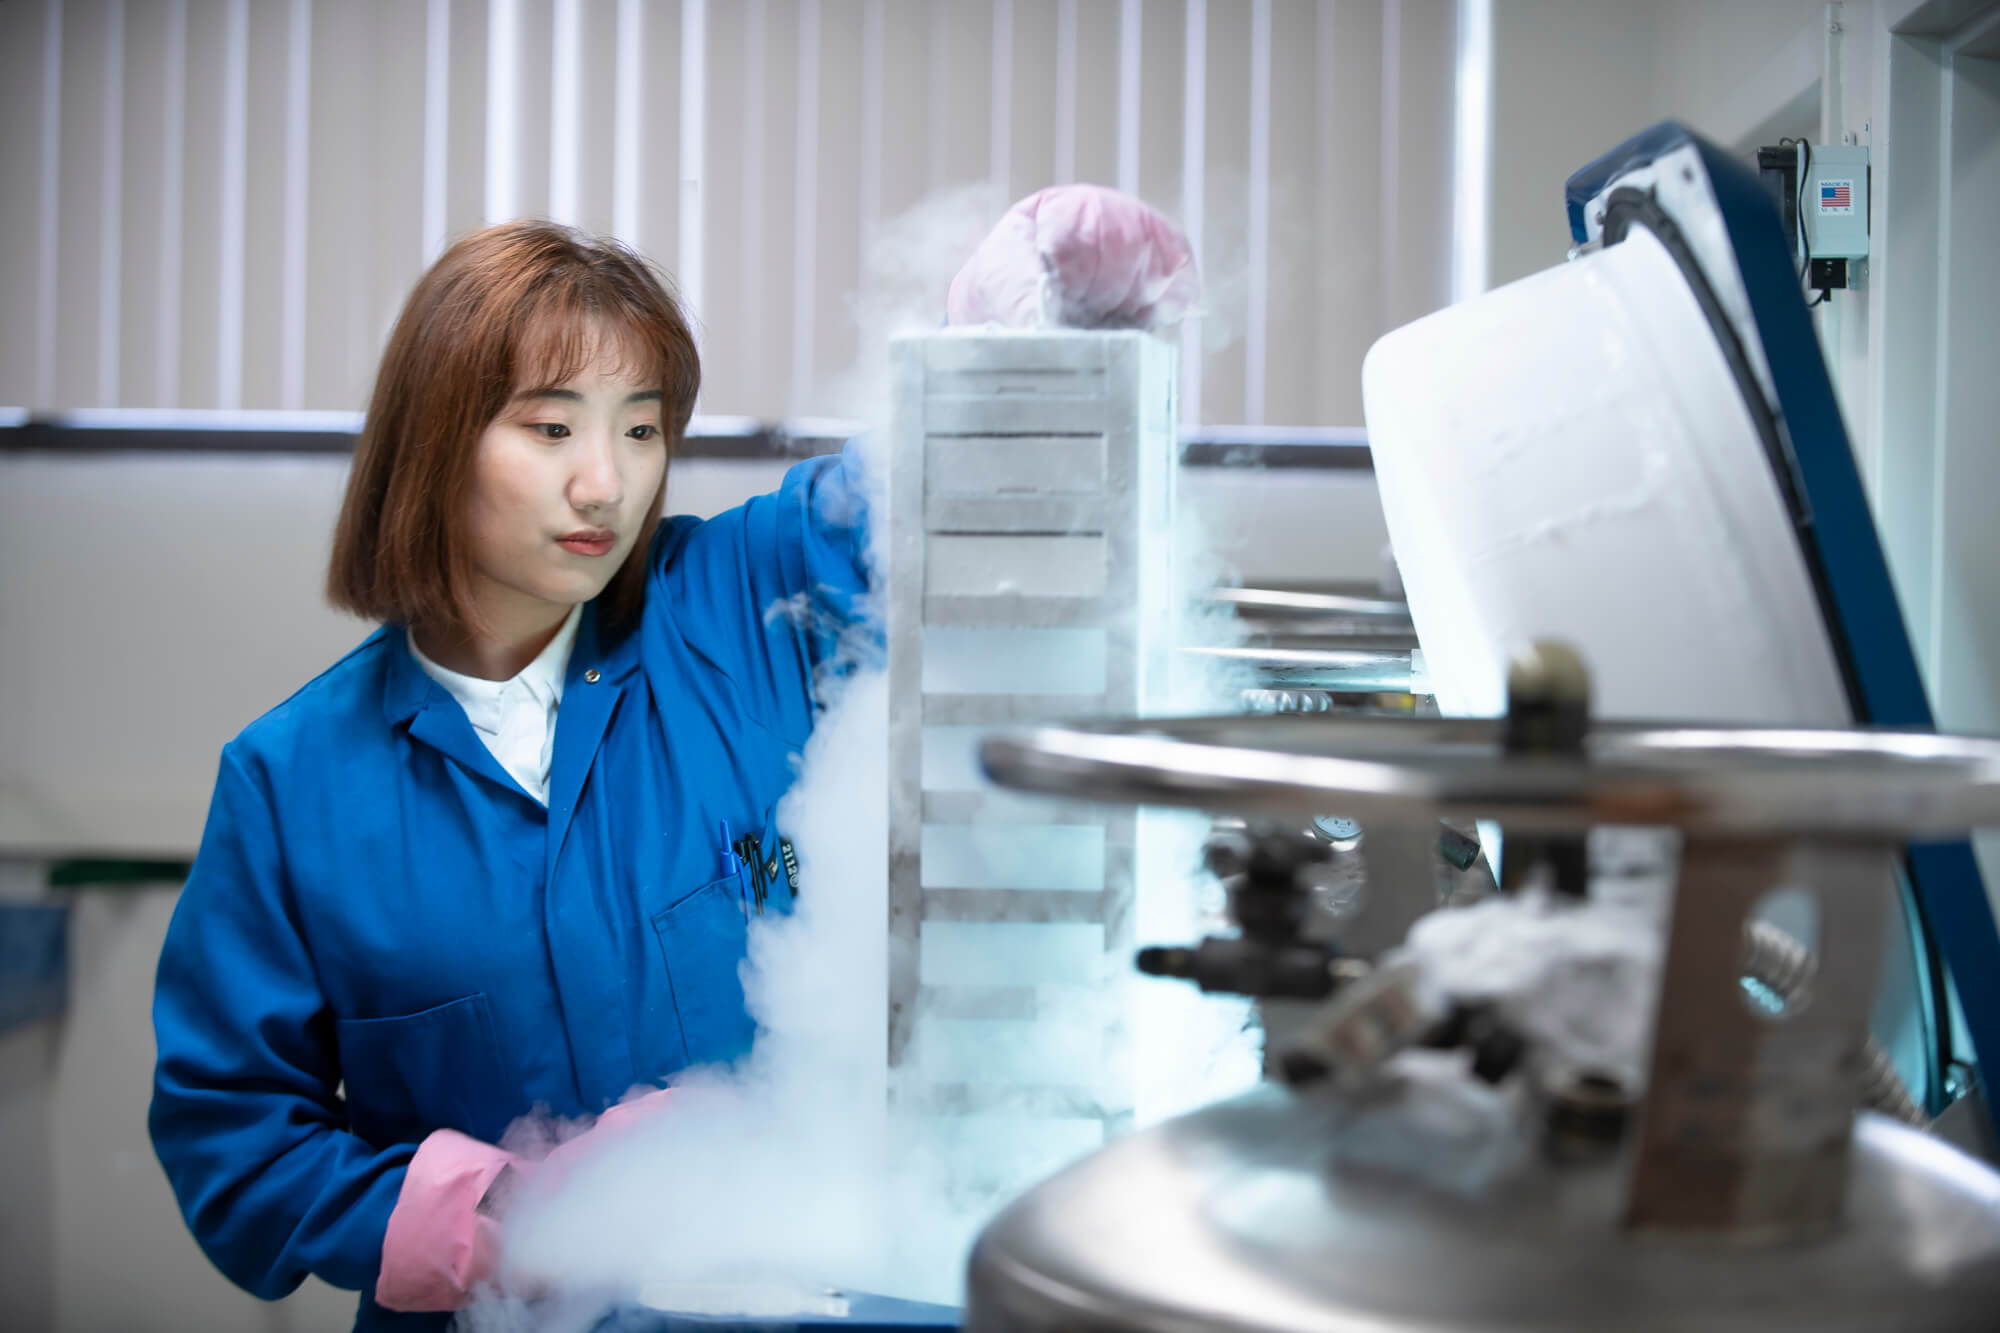 Warehouse worker at Toll Group warehouse industrial photography assigbment.